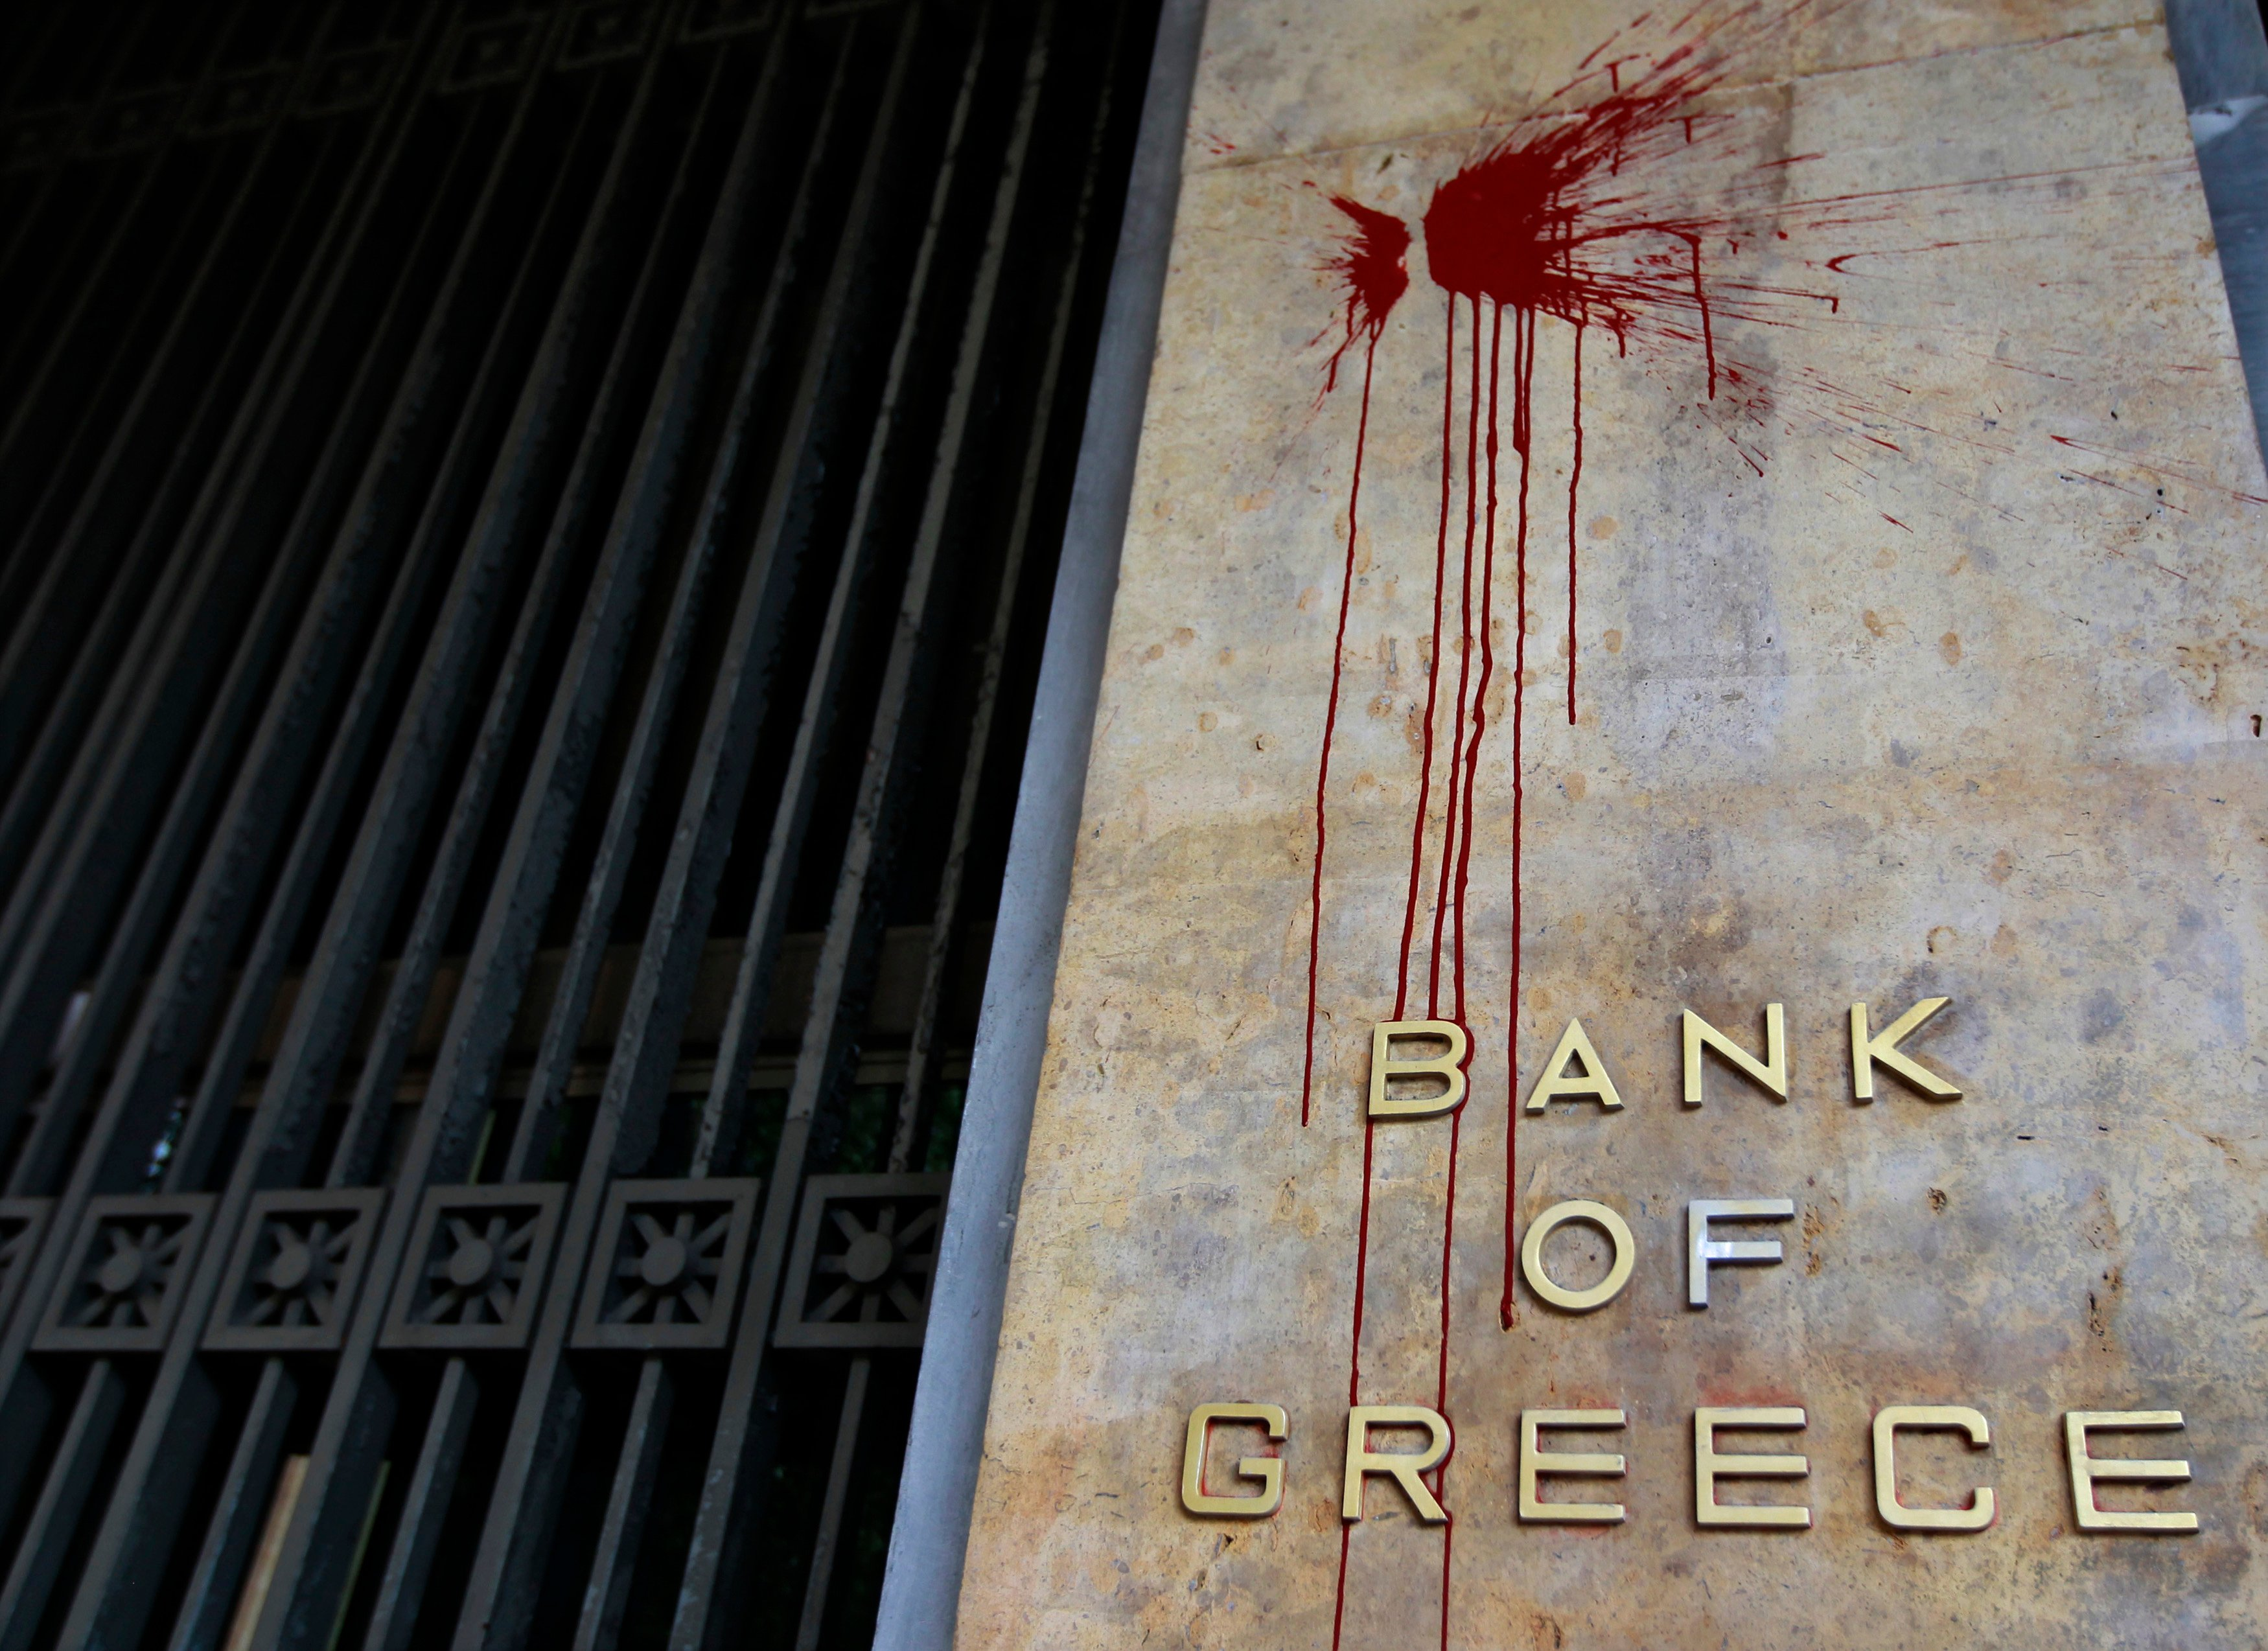 The defaced facade of the Bank of Greece is seen after a night of violence which followed the Greek parliament approval of a deeply unpopular austerity bill in Athens, February 13, 2012. As Greeks head back to the polls in an election that may help to decide whether they stay in Europe's common currency, and as Cypriot politicians move closer to asking for an international bailout - perhaps as early as this week - the story of Andreas Vgenopoulos and Marfin helps explain how Greece and Cyprus got here. Picture taken February 13, 2012. To match Special Report GREECE/MARFIN REUTERS/John Kolesidis (GREECE - Tags: BUSINESS EMPLOYMENT CIVIL UNREST POLITICS) - RTR33J61